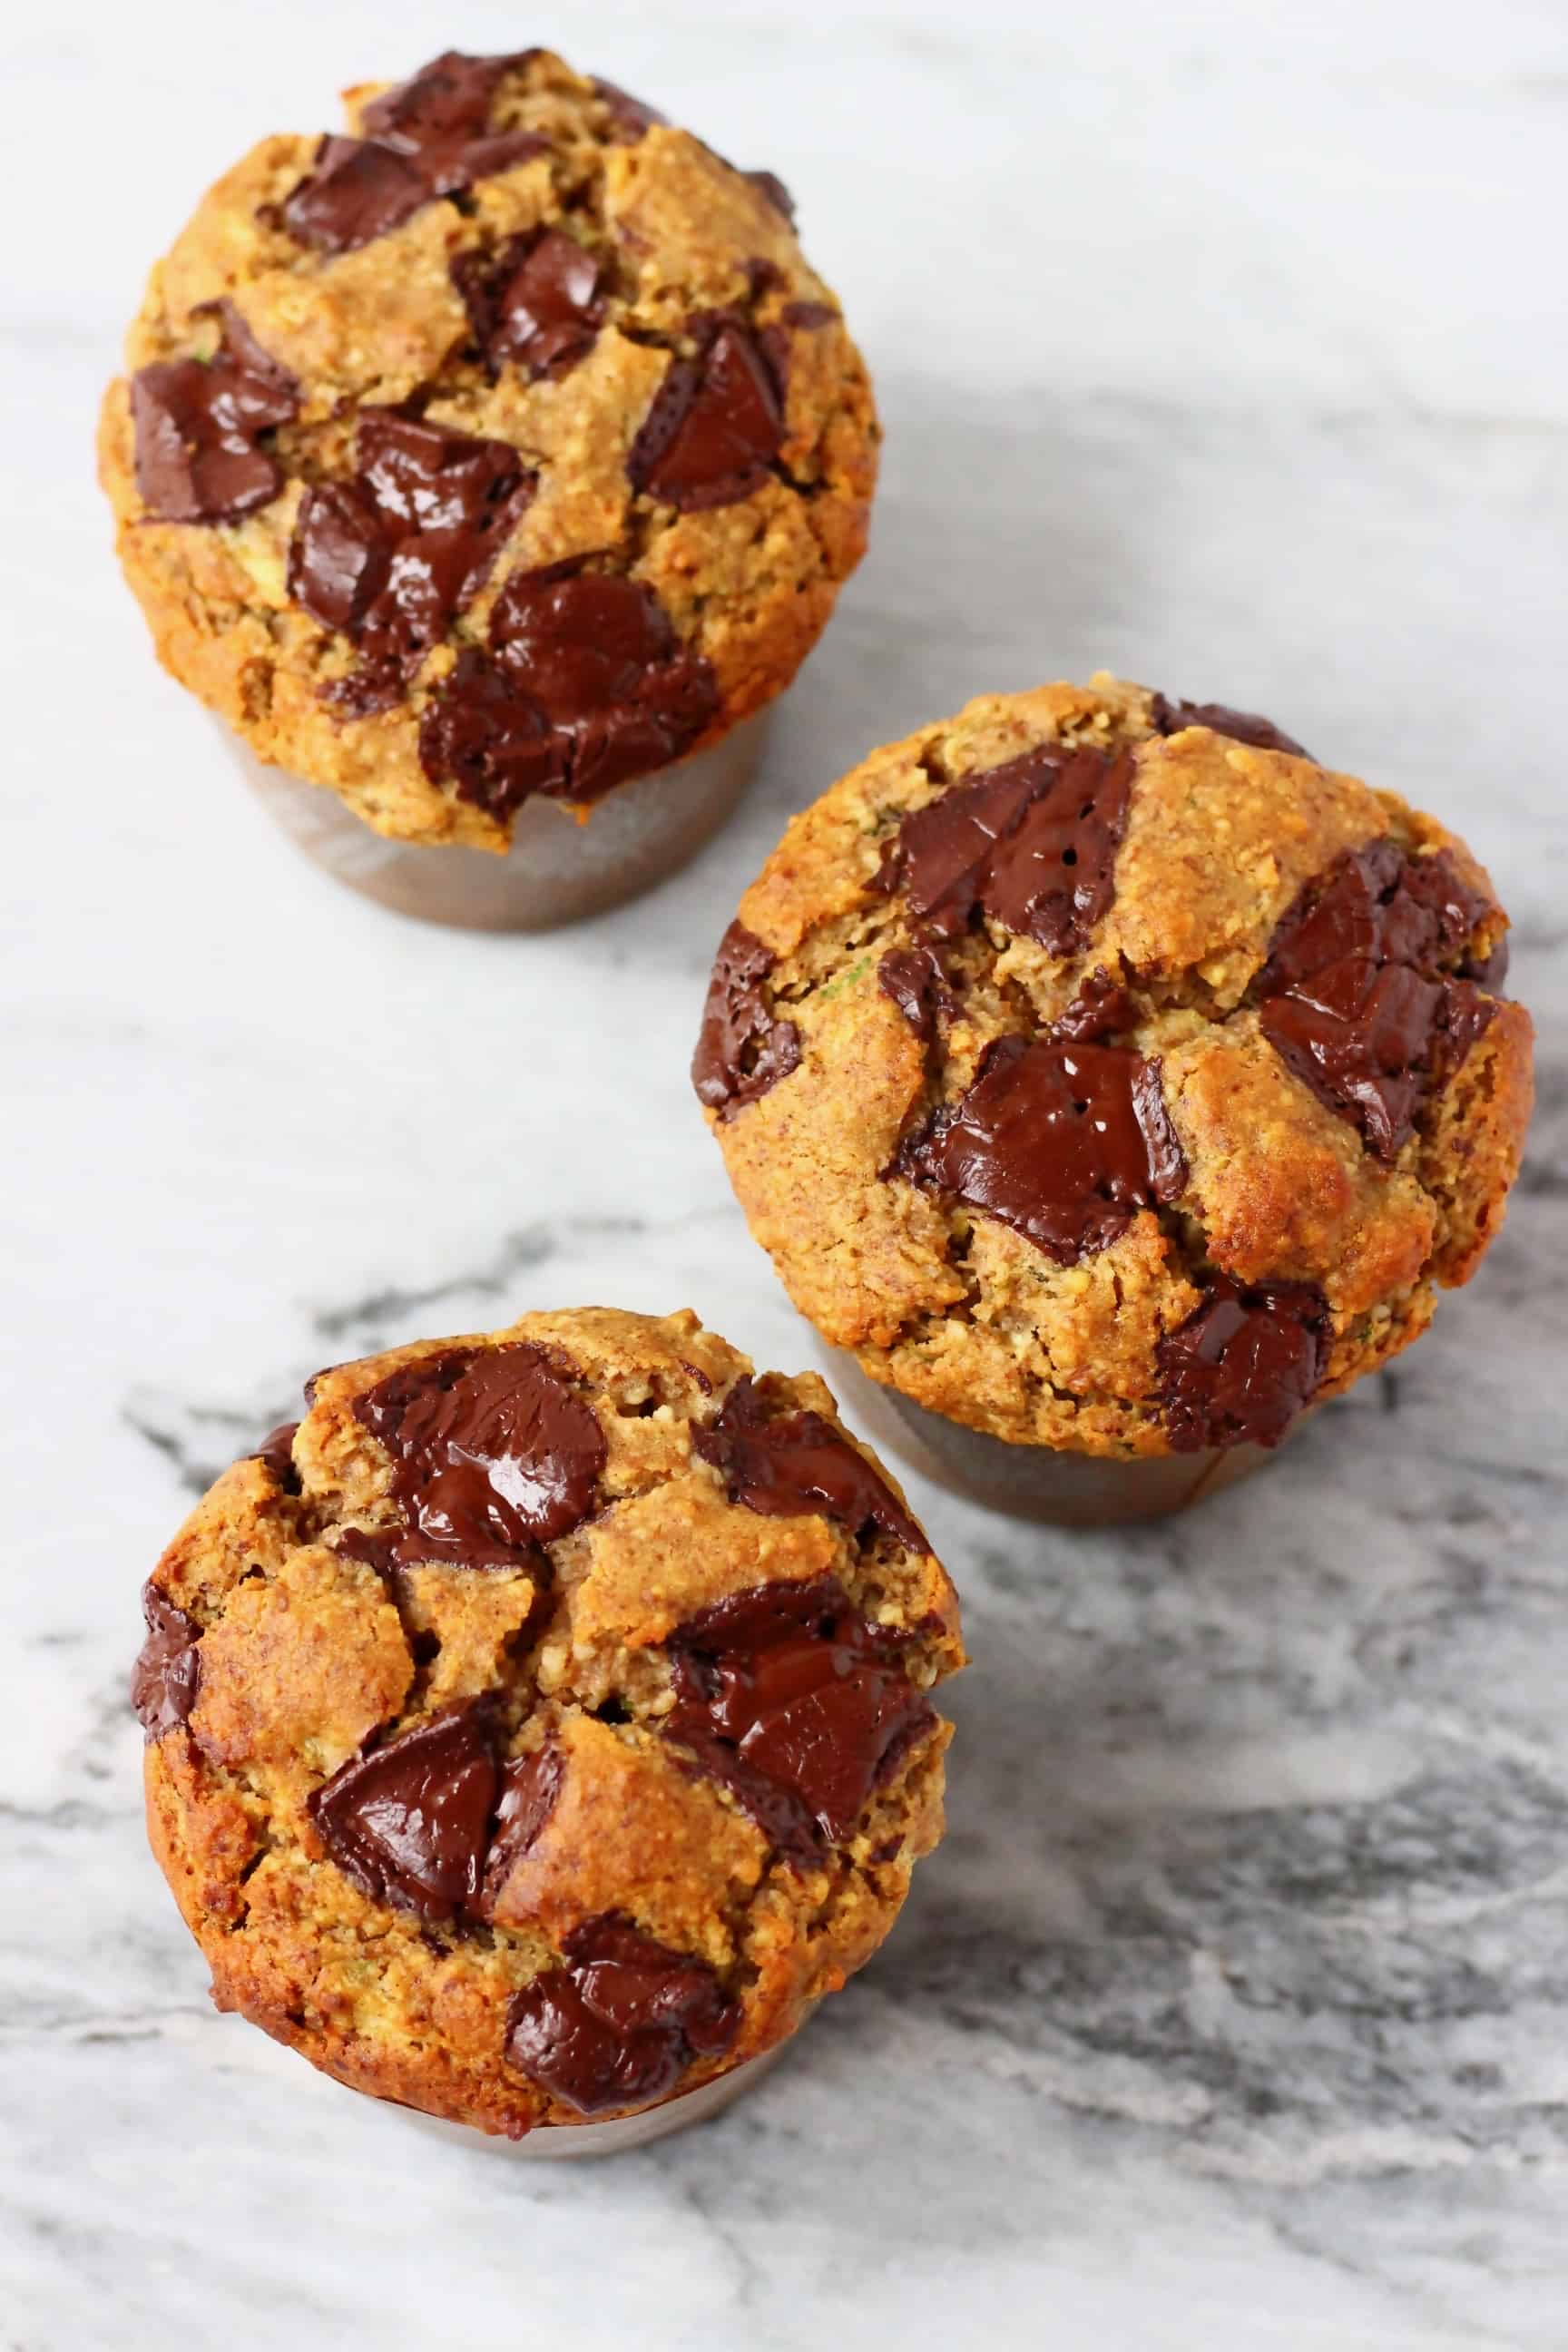 Three zucchini muffins with chocolate chips against a marble background